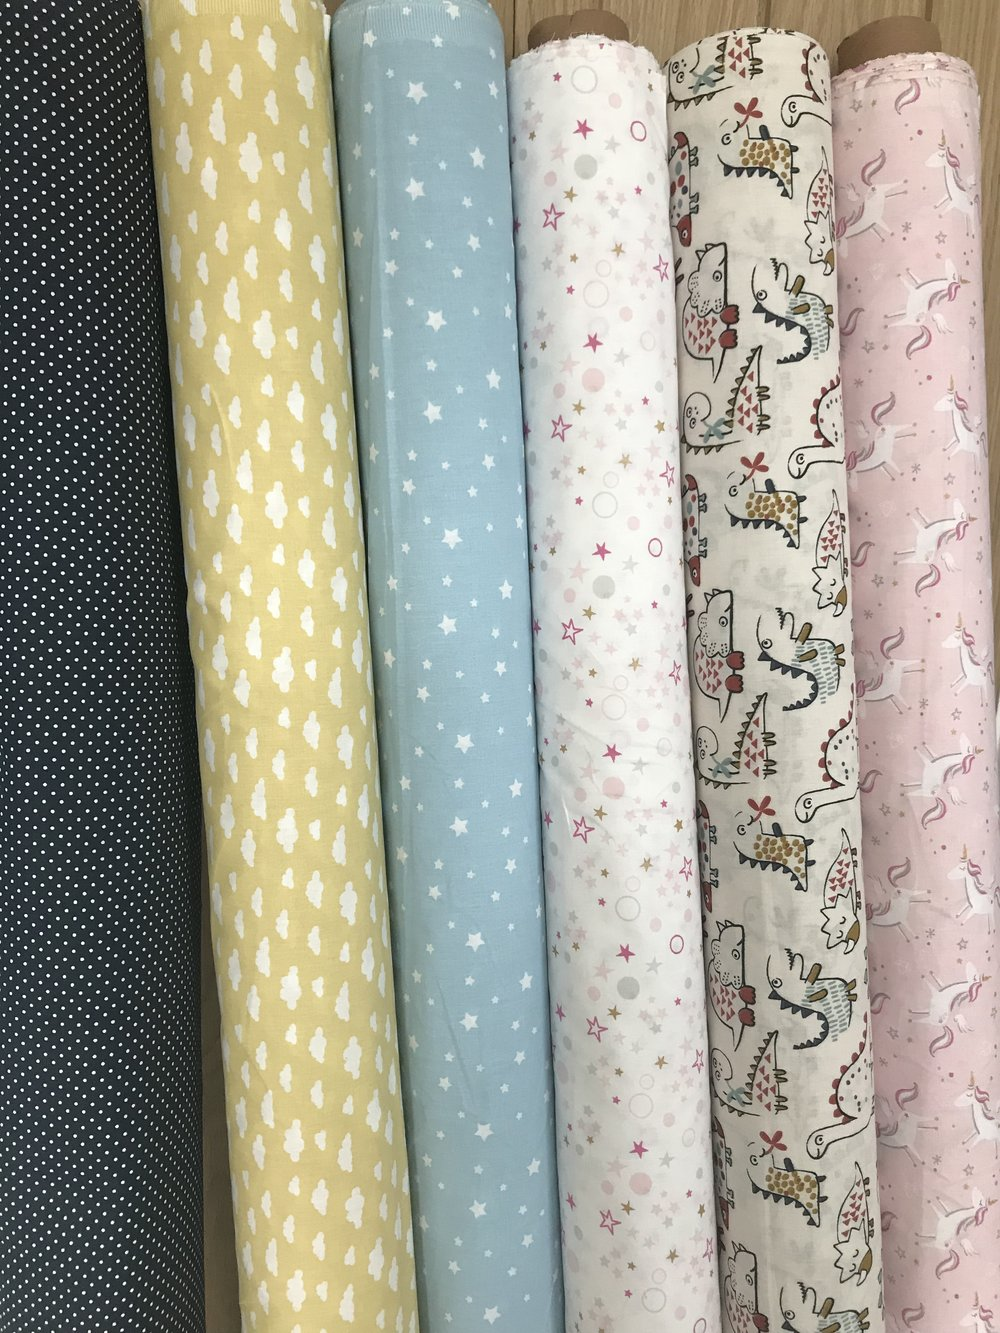 Some of our first BibbilyBoo fabrics the day they arrived!